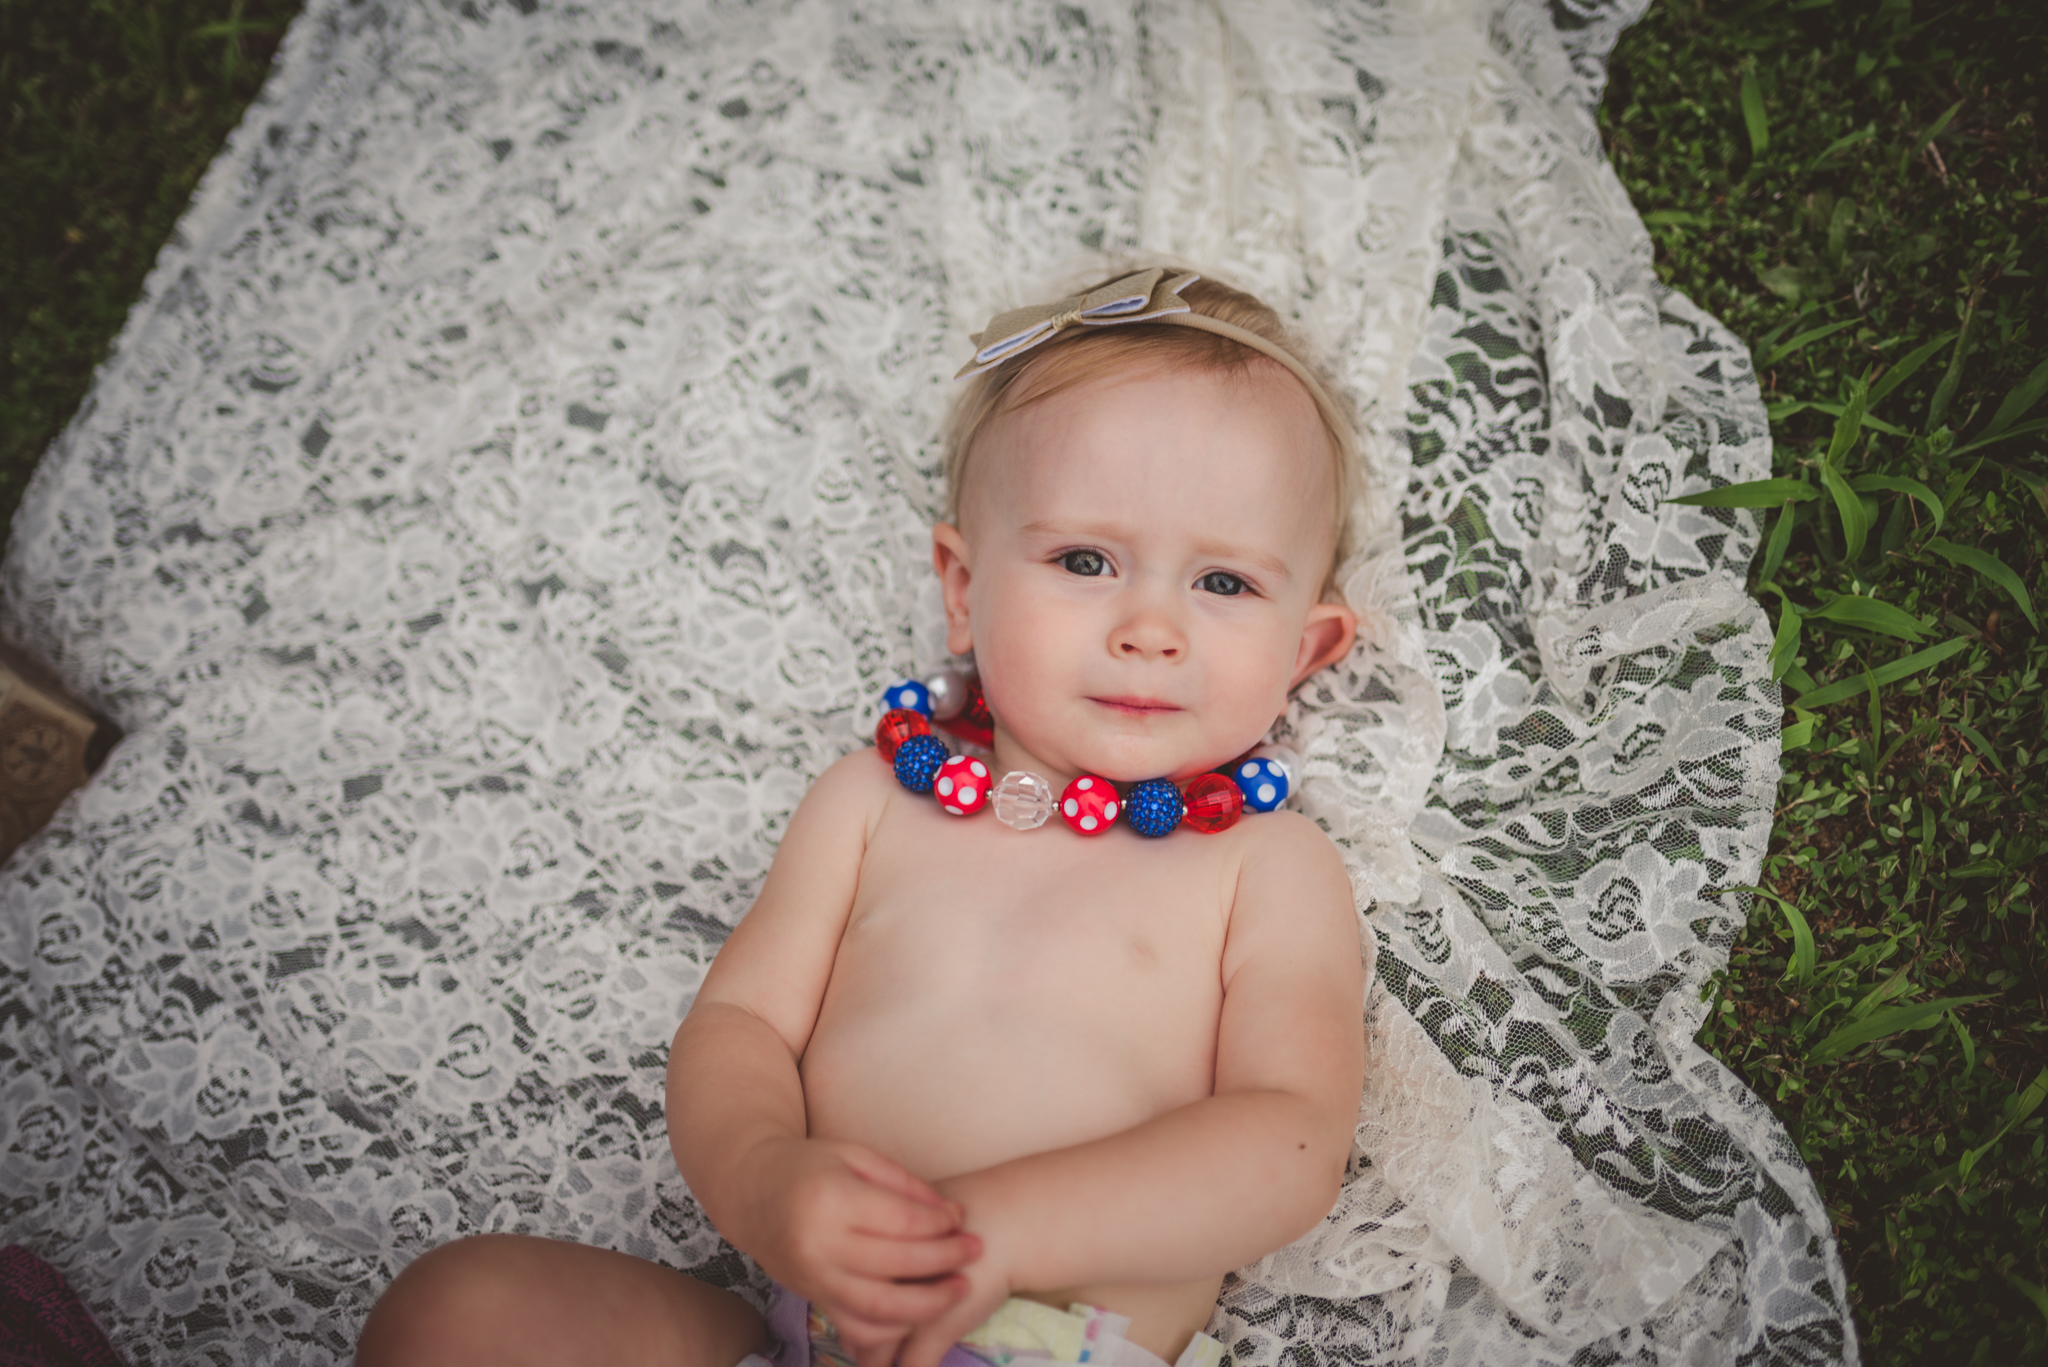 This little girl is getting ready for her fourth of July cake smash session with Rose Trail Images in Rolesville, North Carolina.